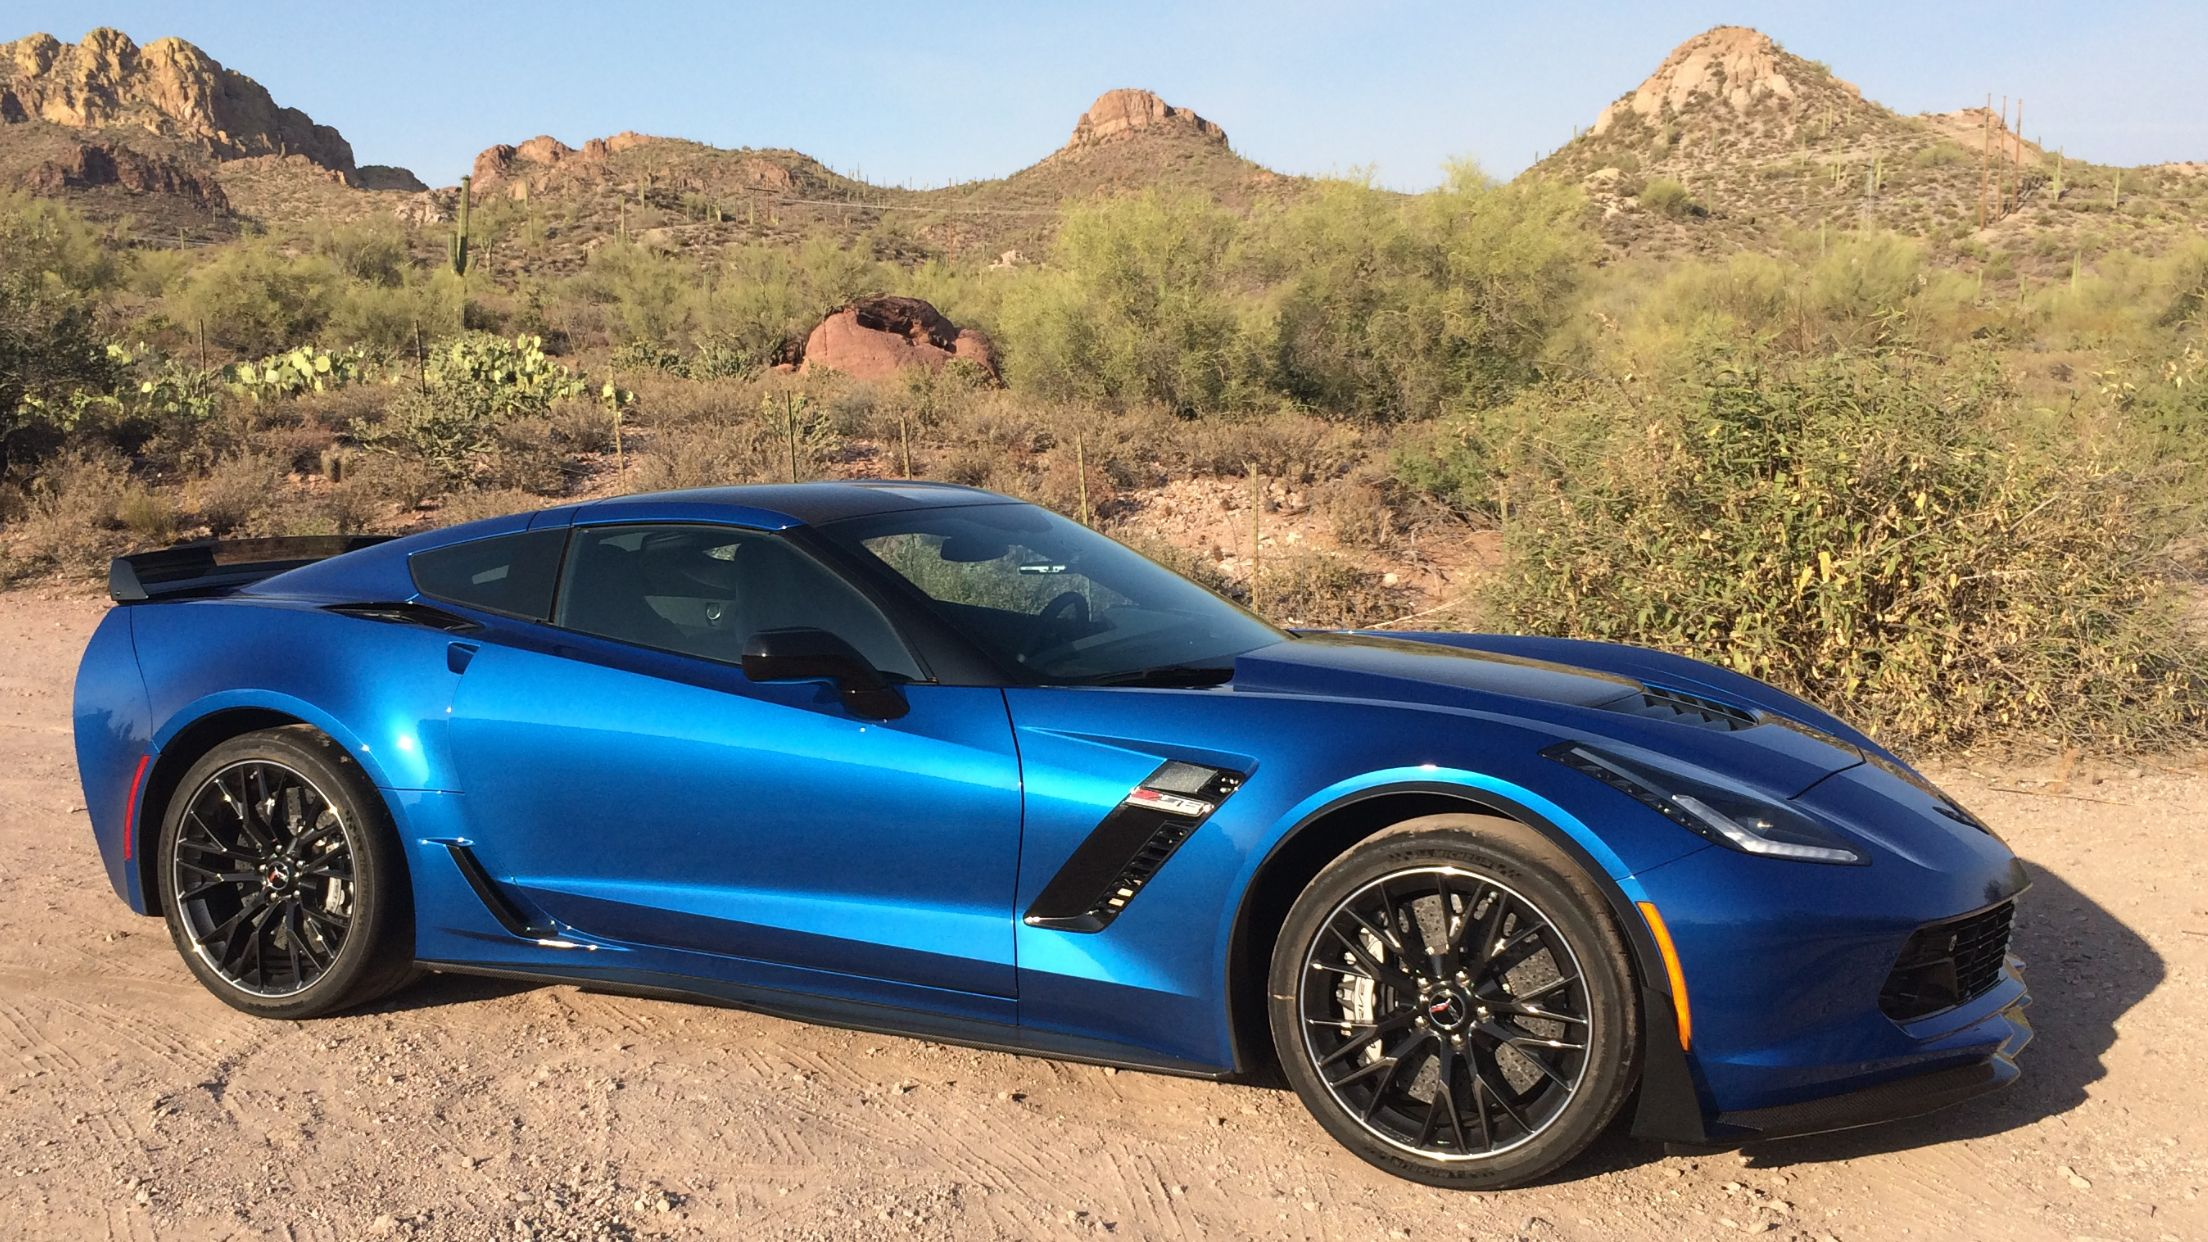 Laguna Blue 2016 Corvette C7 Z06 8 Sd Automatic A Gift From My Wife After I Lost Left Leg She Helped Me Trade C6z06 To Get This Beauty